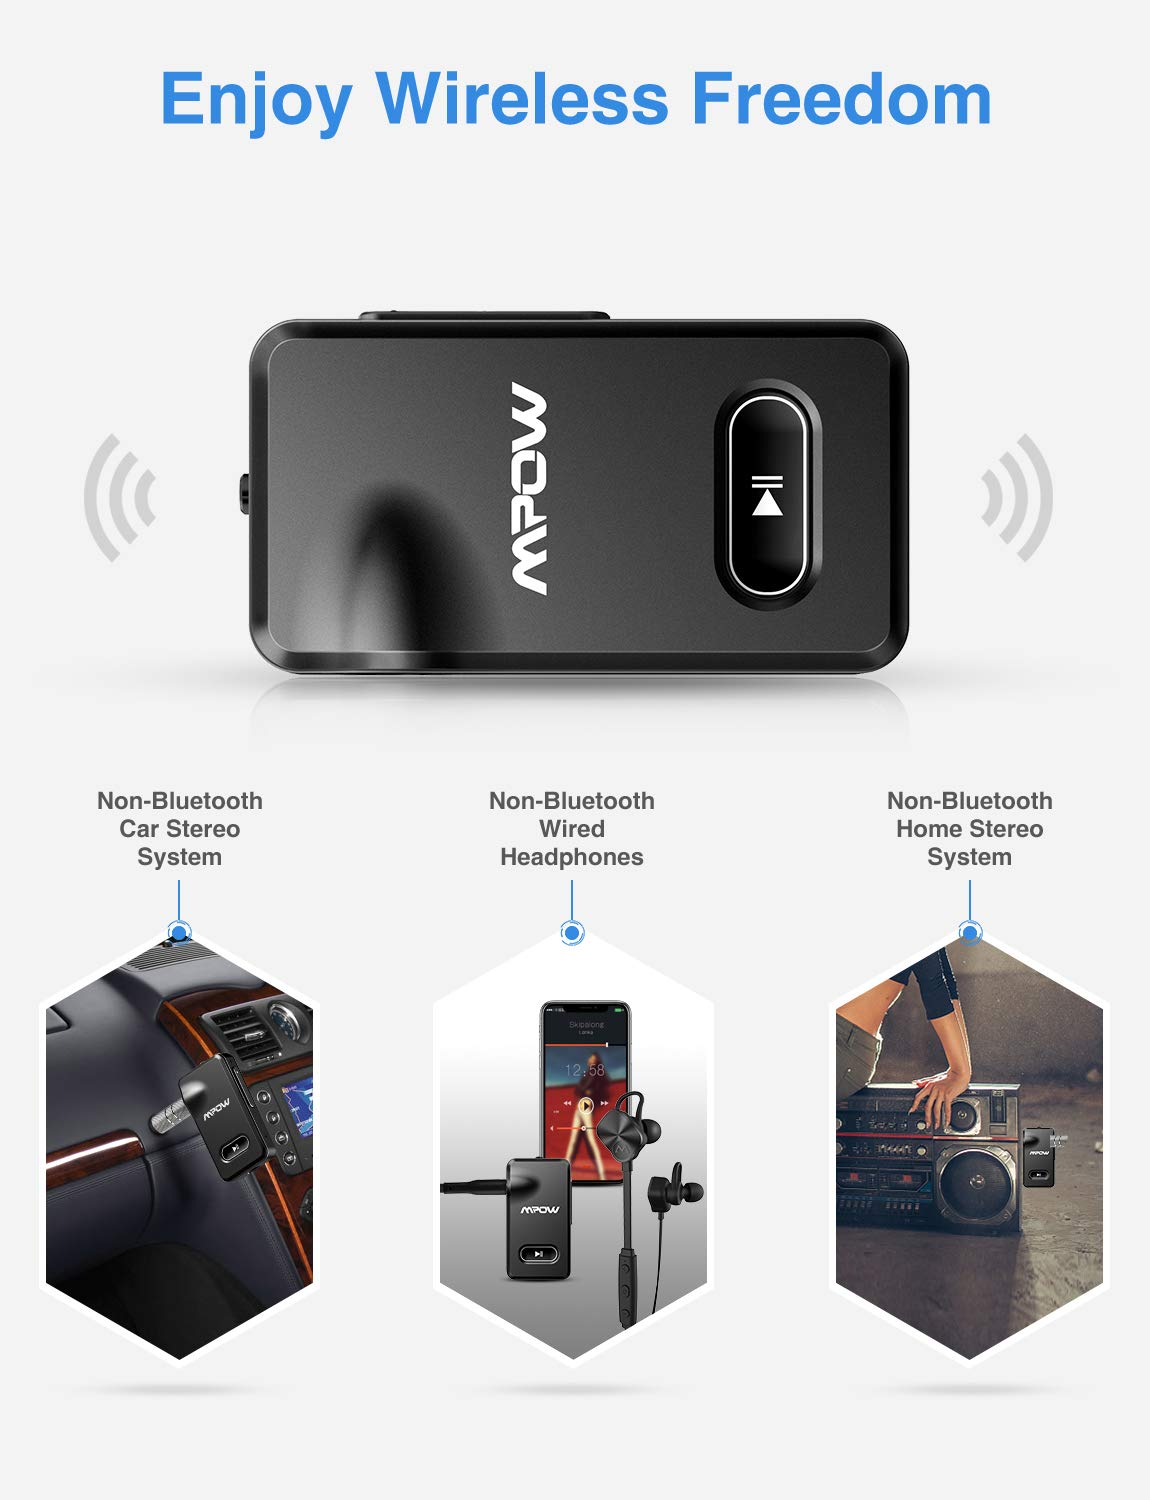 Mpow BH129 Bluetooth Receiver with CSR Chip for Better Music Quality,15 Hours Long Playing Time Bluetooth Adapter, Wireless Audio Car Kits with 1 Second Turn On/Off Button (Dual Link, Voice Assistant) by Mpow (Image #2)